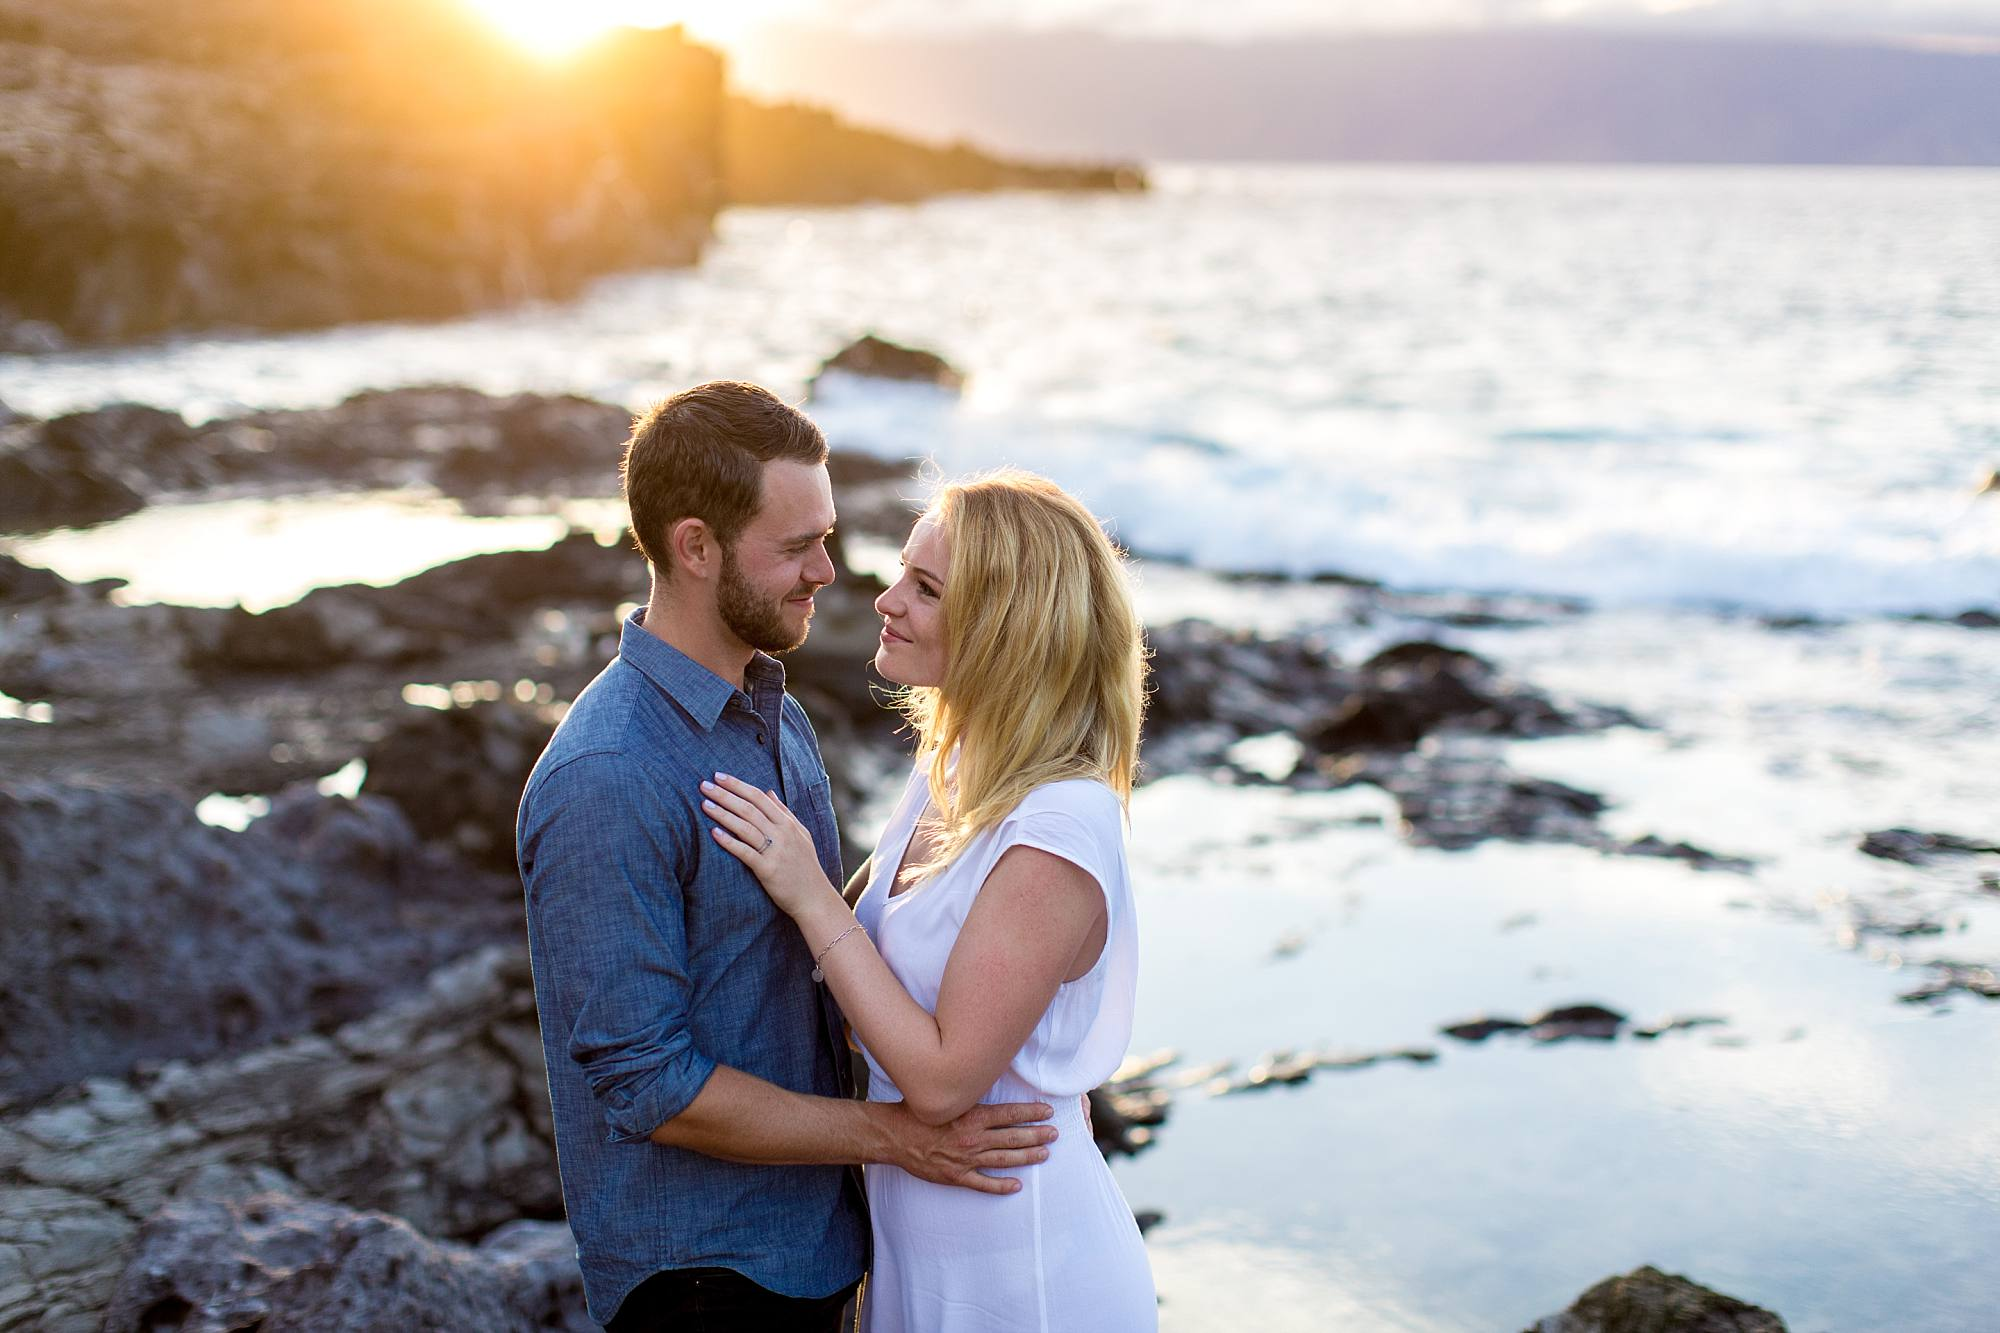 beautiful Maui sunset peeking over the rocks over newly engaged couple